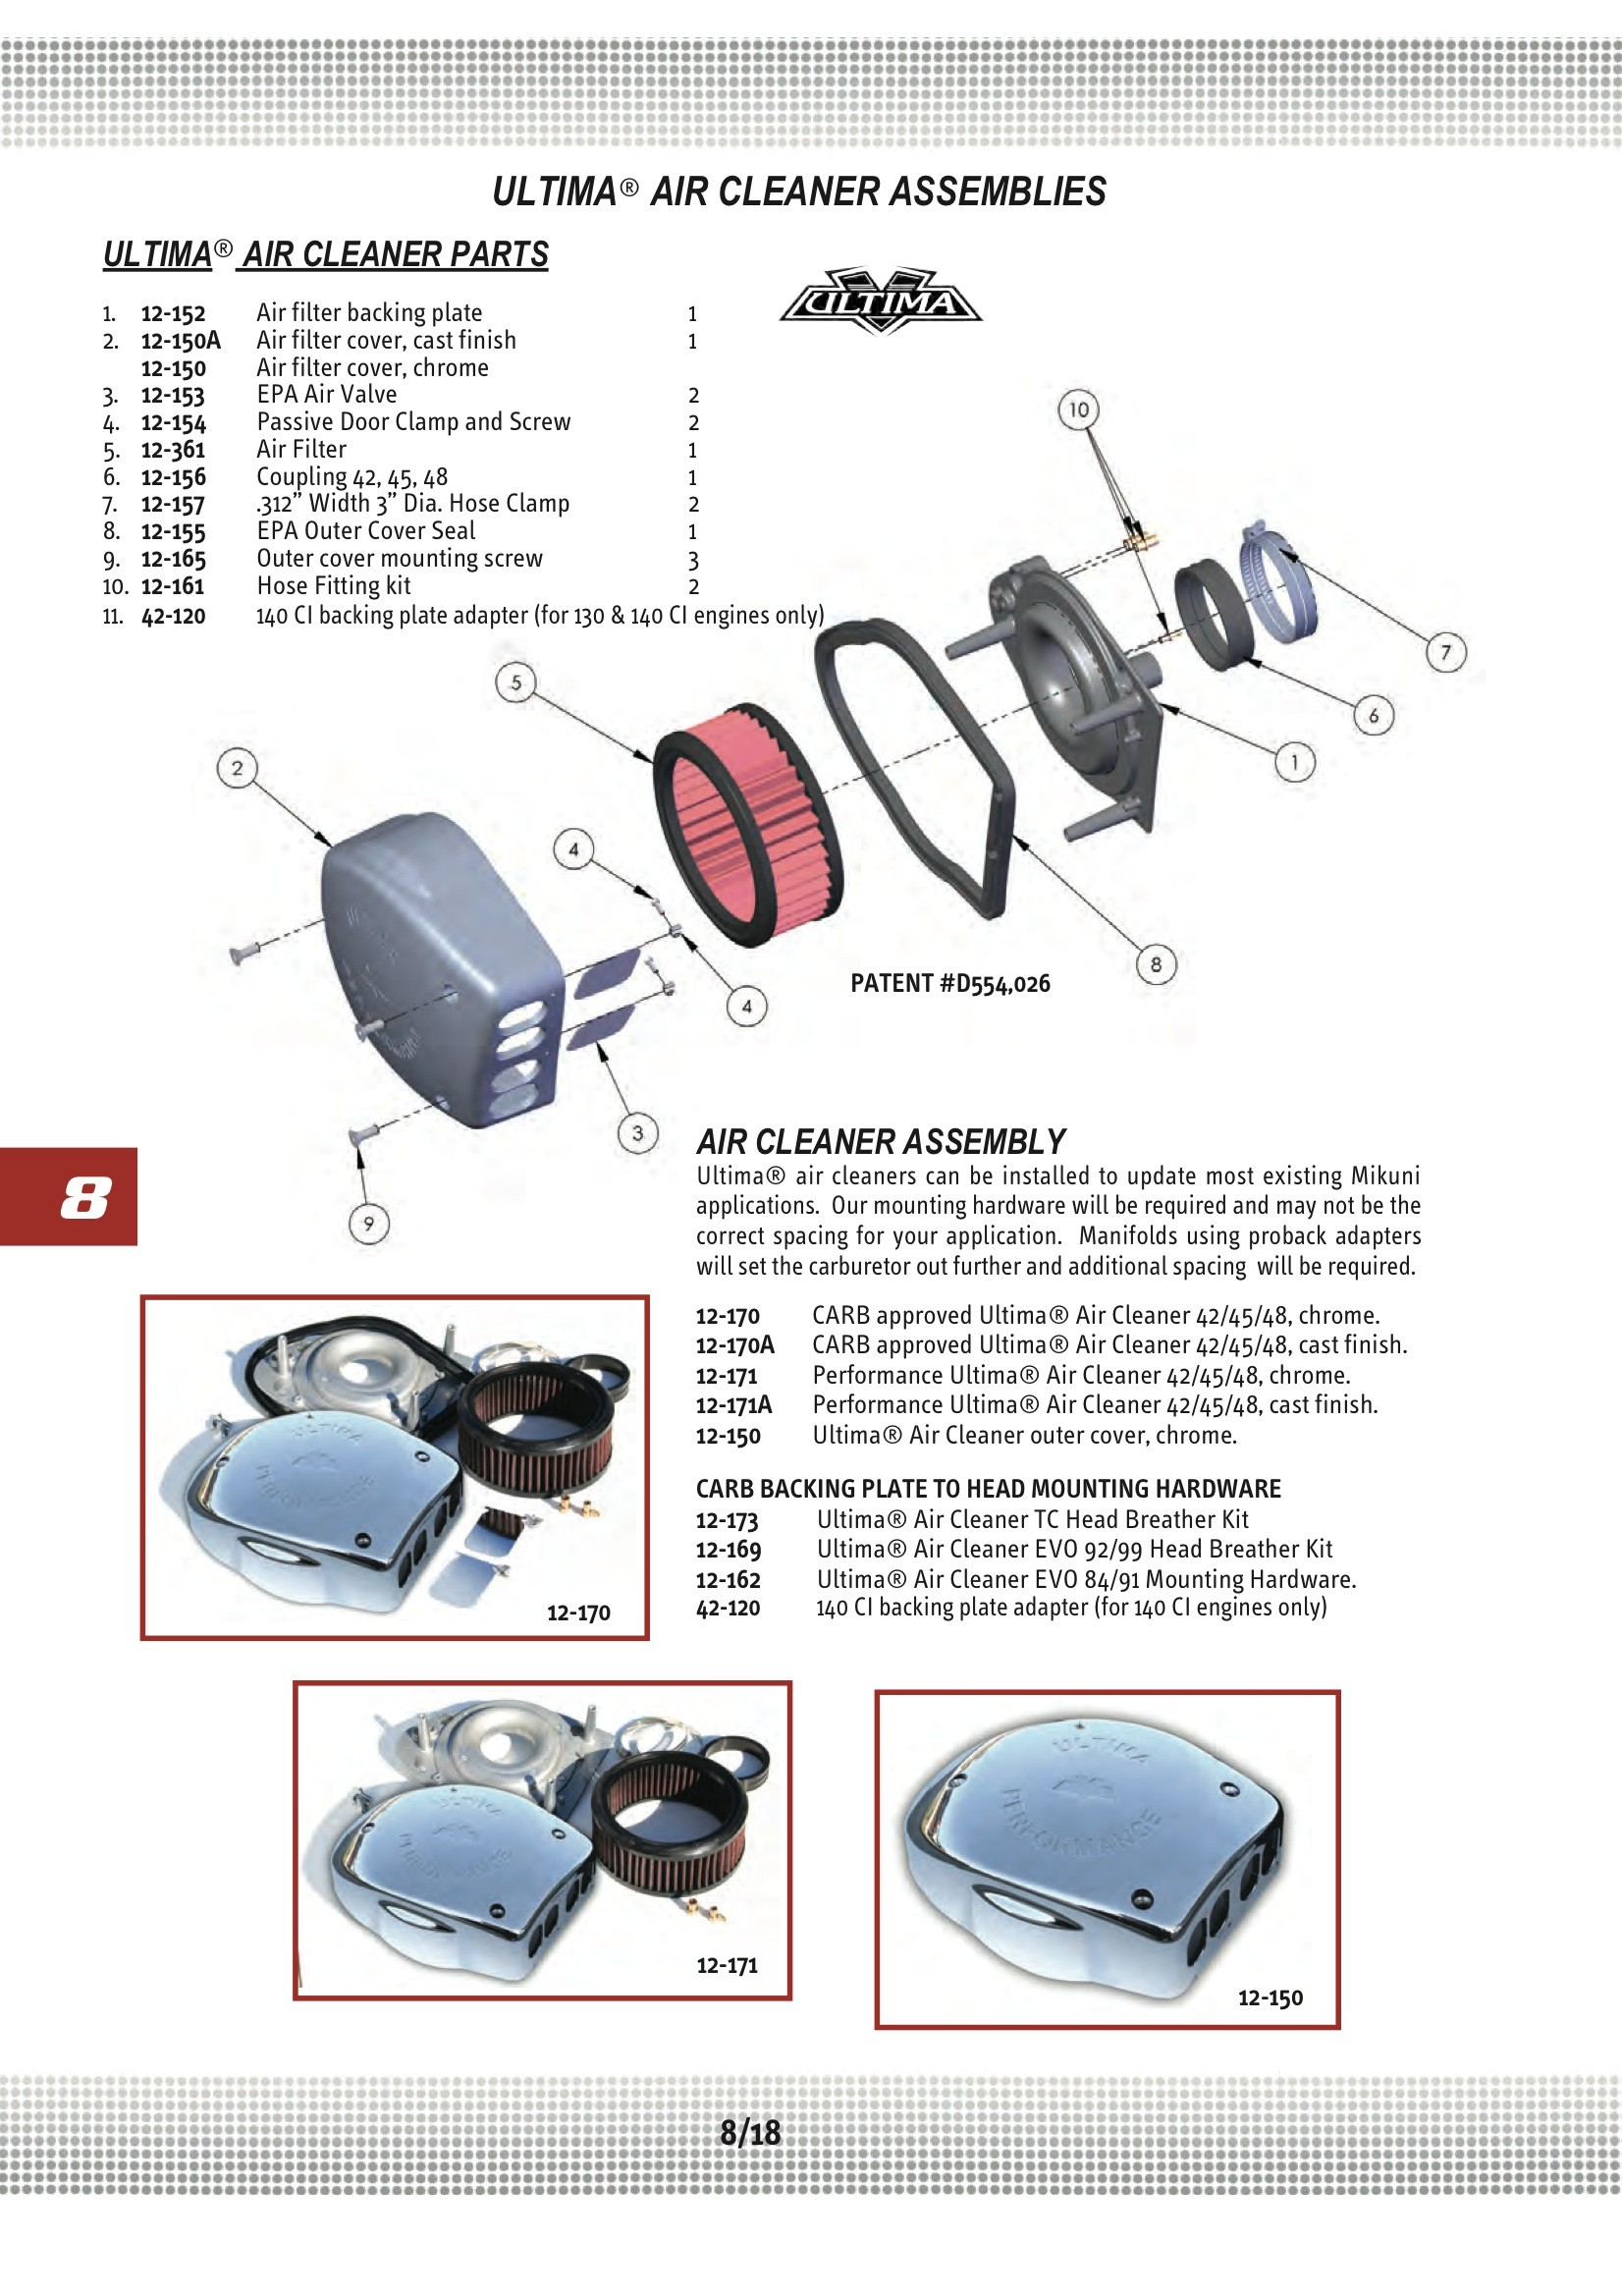 Harley Engine Parts Diagram Ultima Backing Plate Tube 3 16 Od Midwest 12 161 Of Harley Engine Parts Diagram